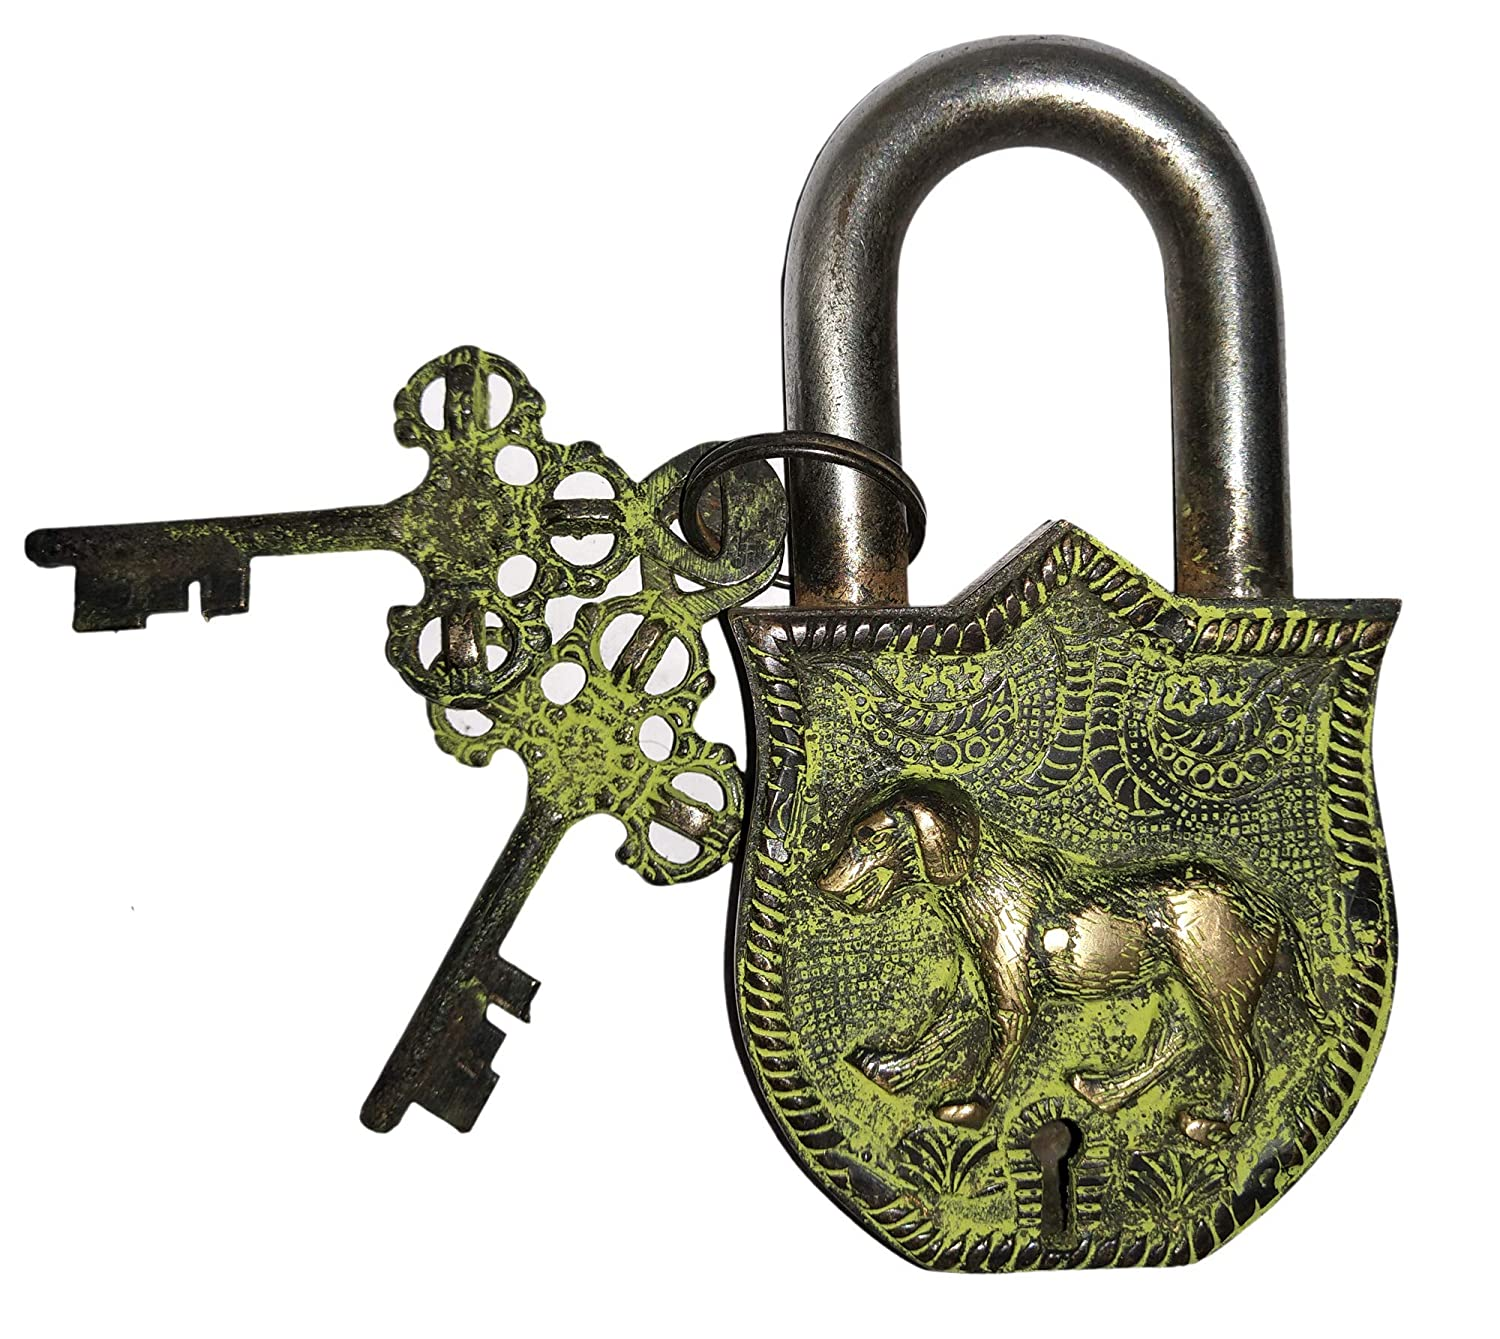 Handmade Antique Design Unique Collectible Combination of Style /& Security with 2 Keys Laxman Art Dog Design Brass Lock Padlock